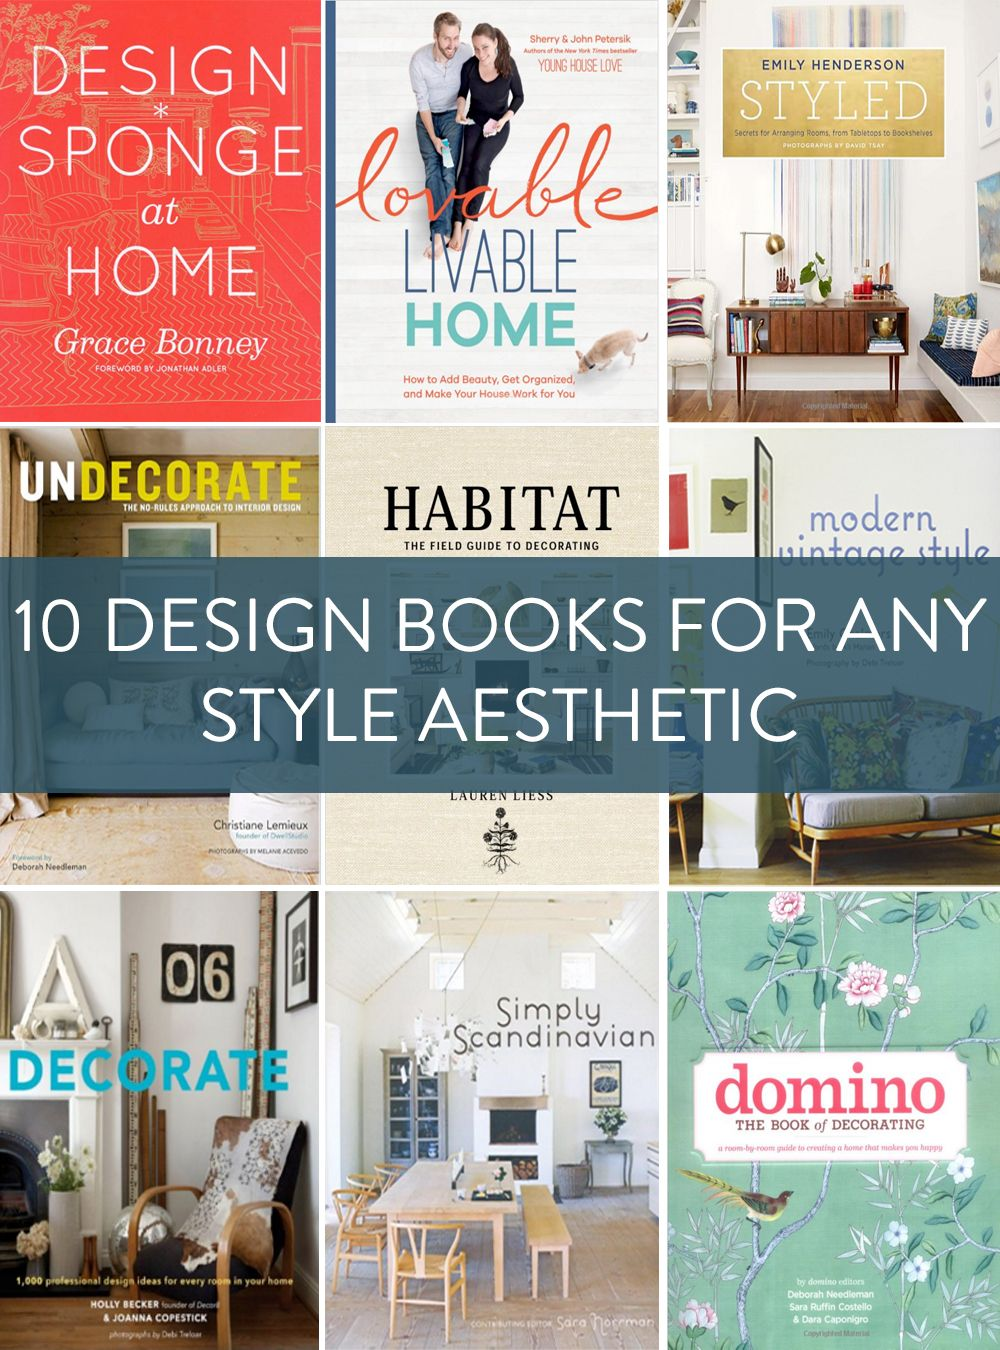 Shopping Guide: 10 Must Have Design Books for Every Taste and Style ...